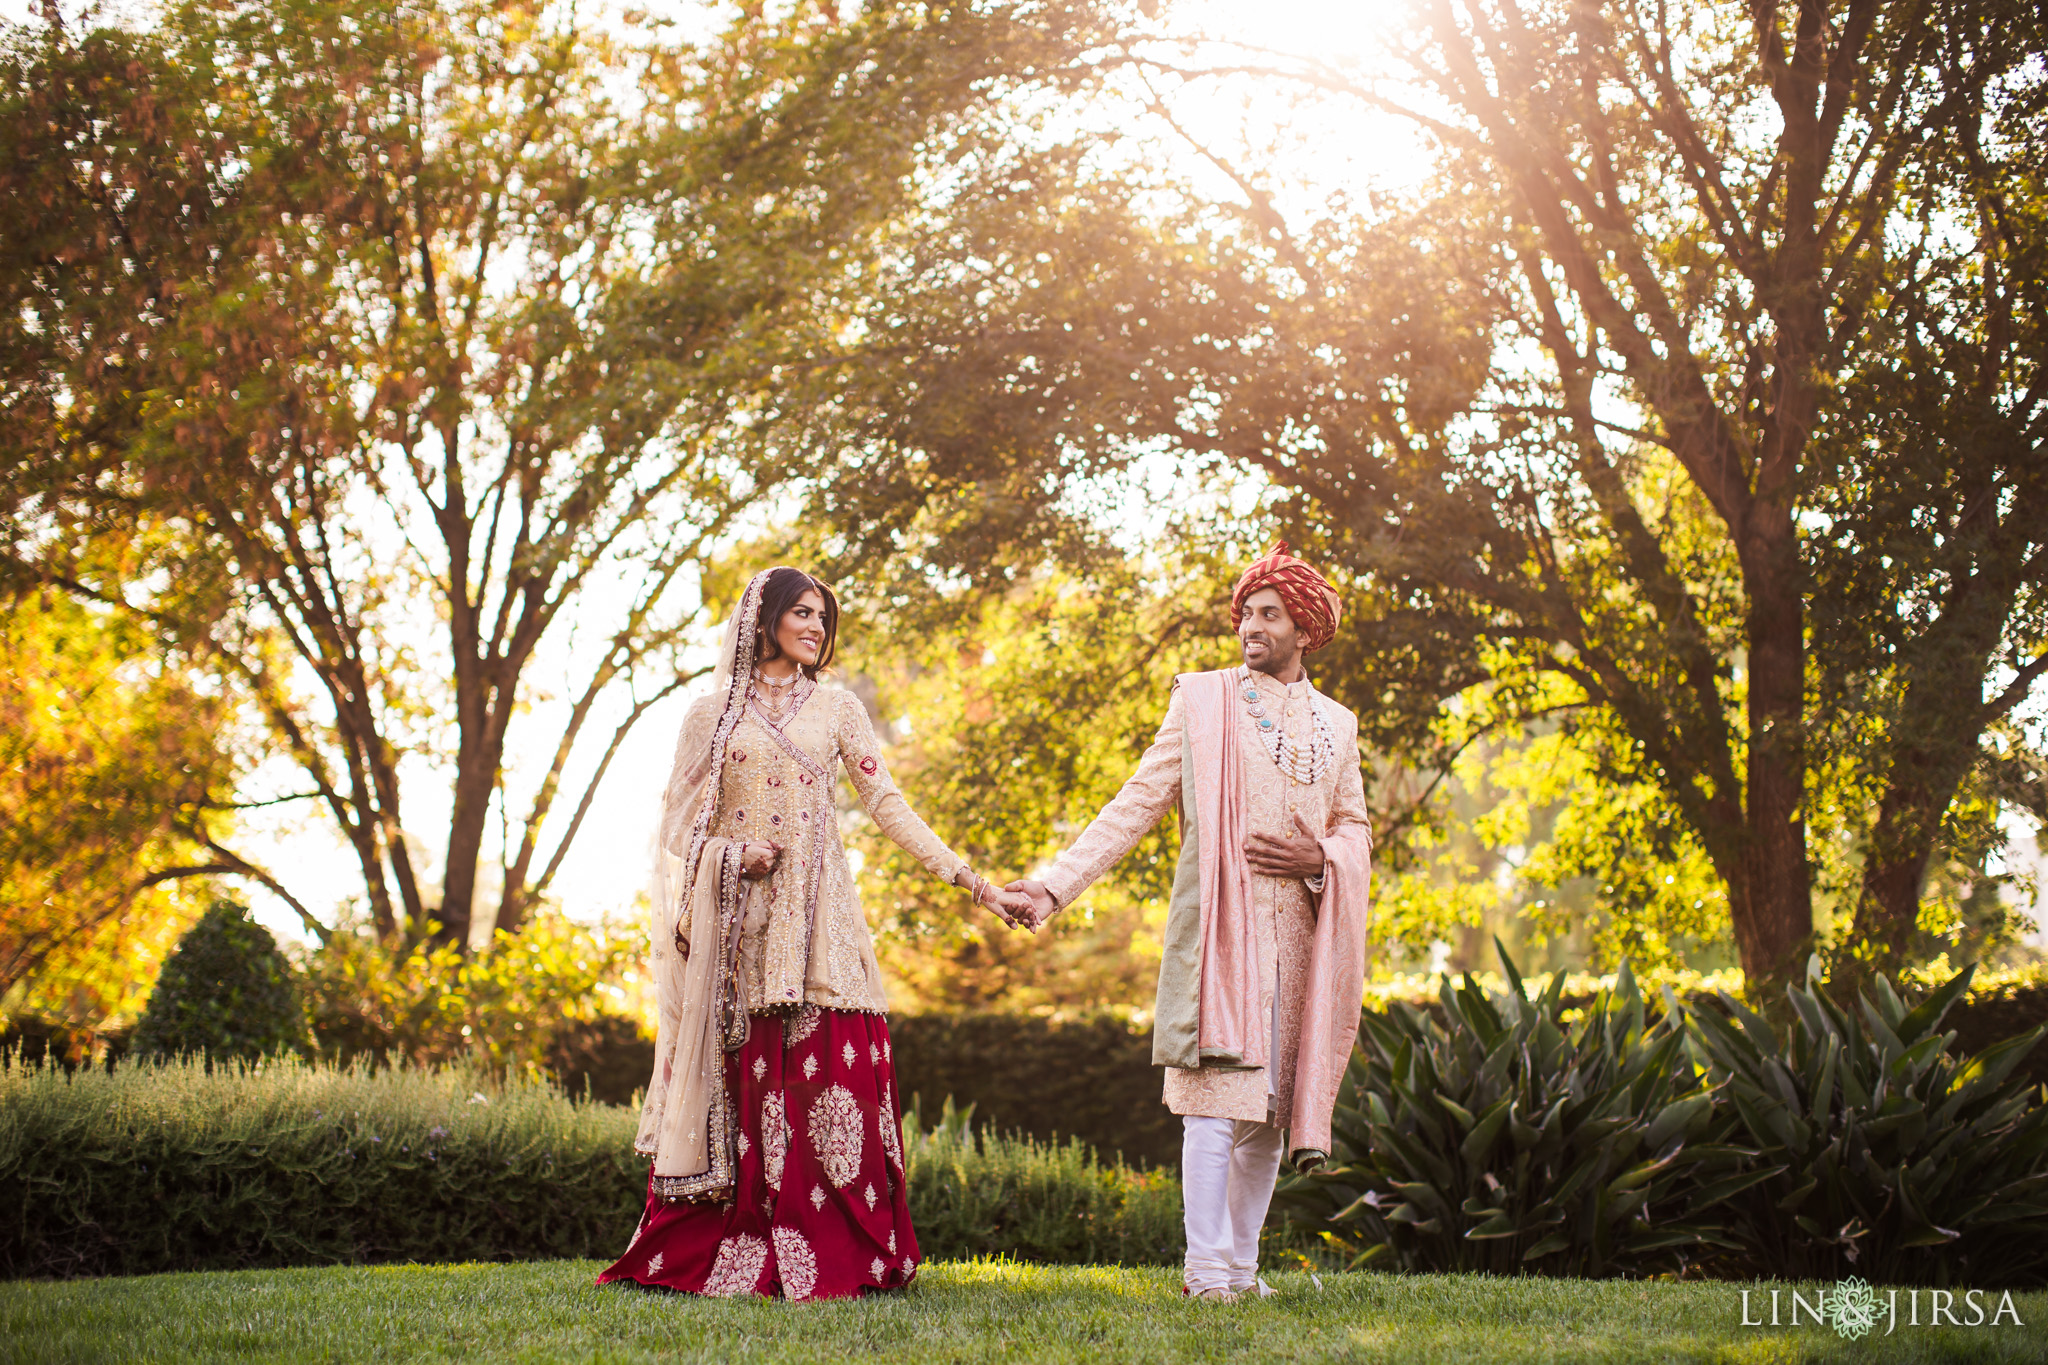 013 four seasons westlake village muslim wedding photography